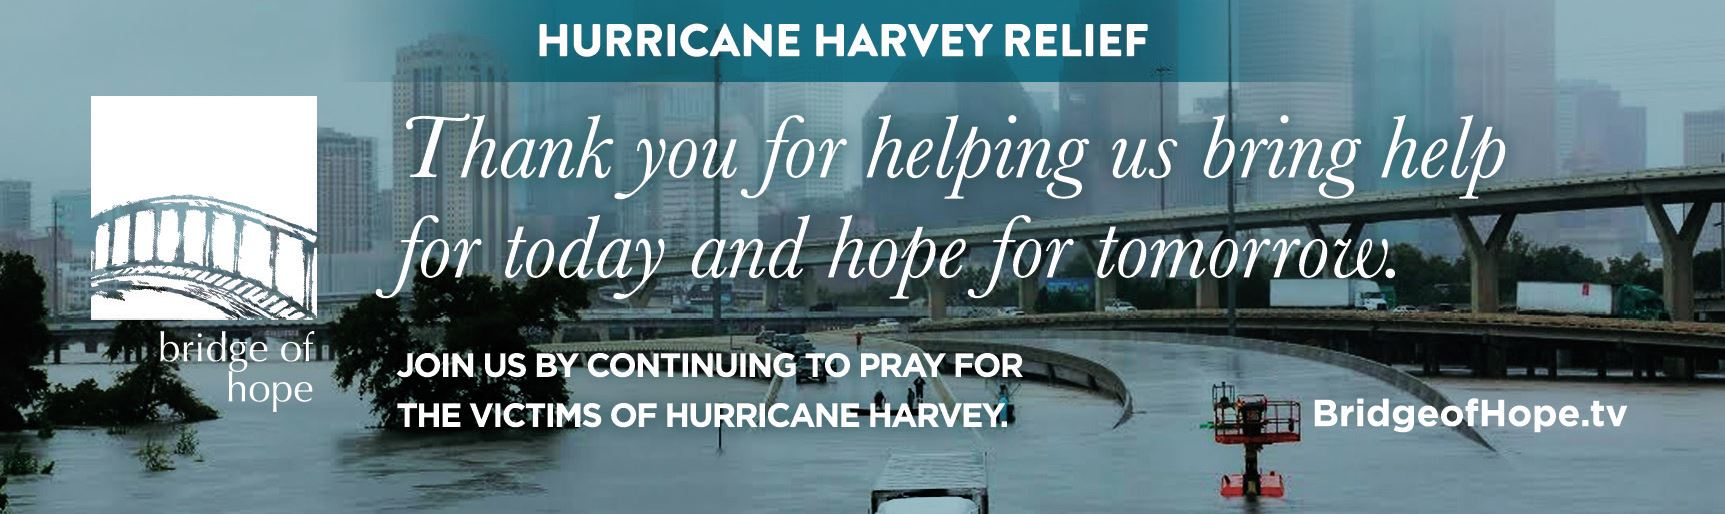 Bridge of Hope | Hurricane Harvey Relief | Thank you for helping us bring help for today and hope for tomorrow. | Join us by continuing to pray for the victims of Hurricane Harvey. | BridgeofHope.tv